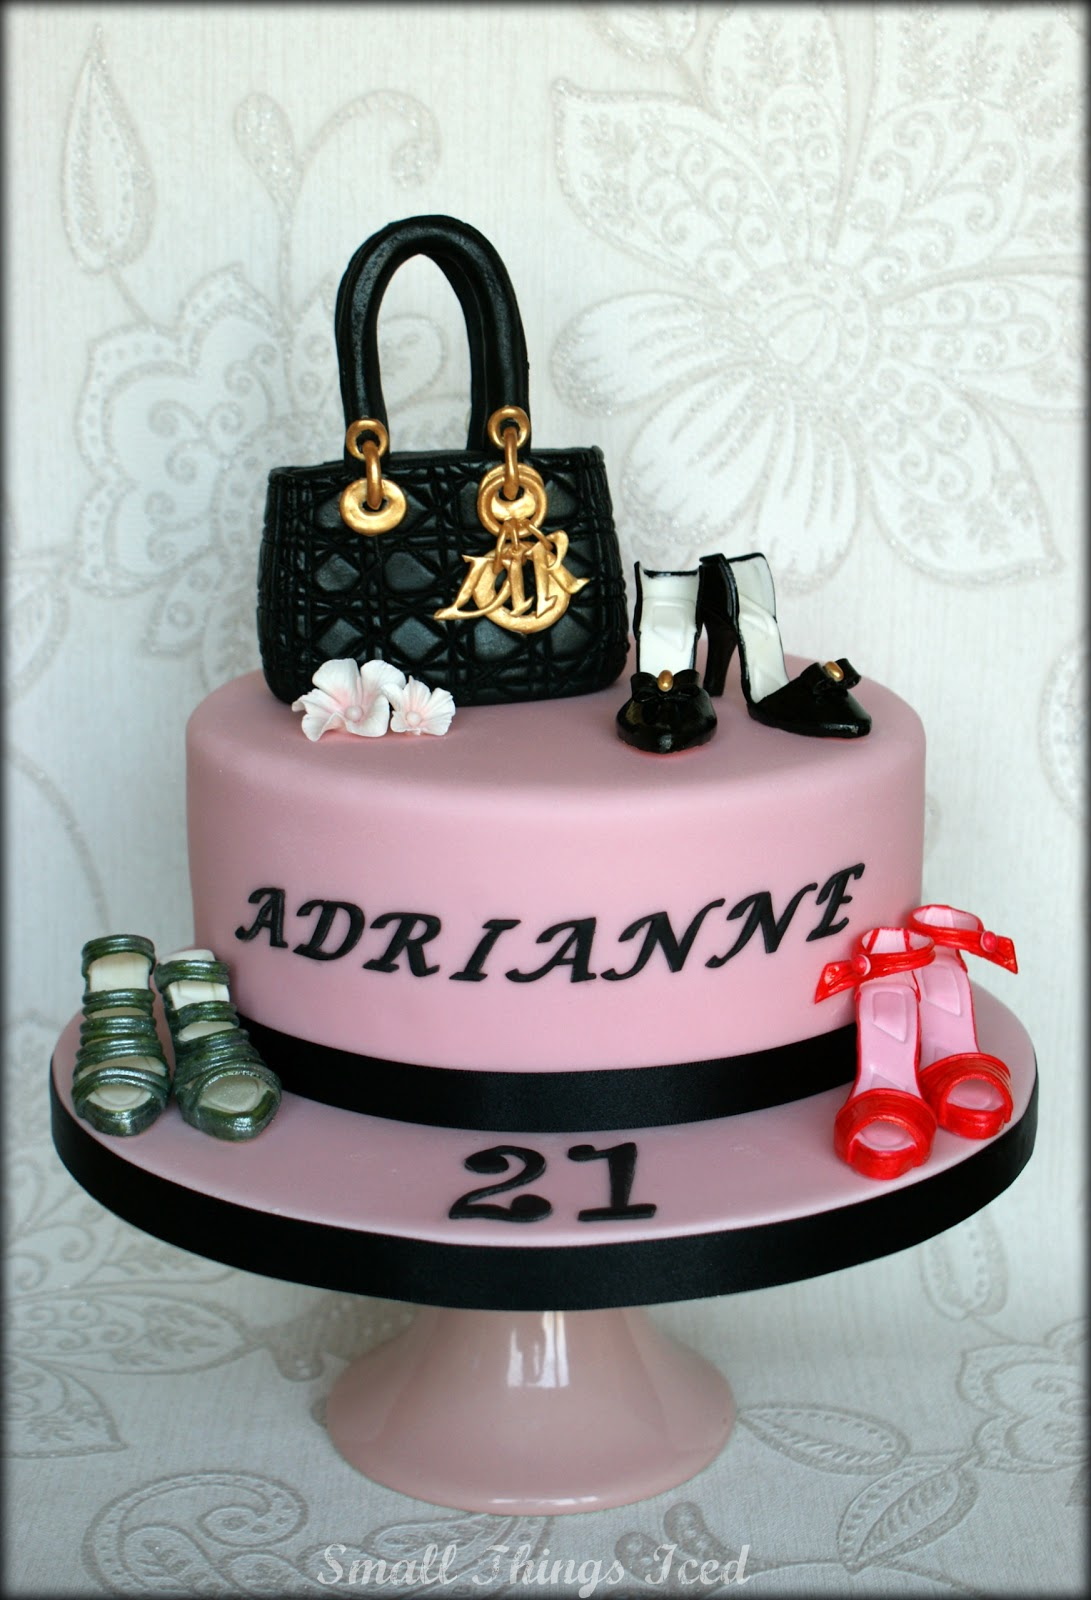 Shoe Birthday Cakes http://smallthingsiced.blogspot.ca/